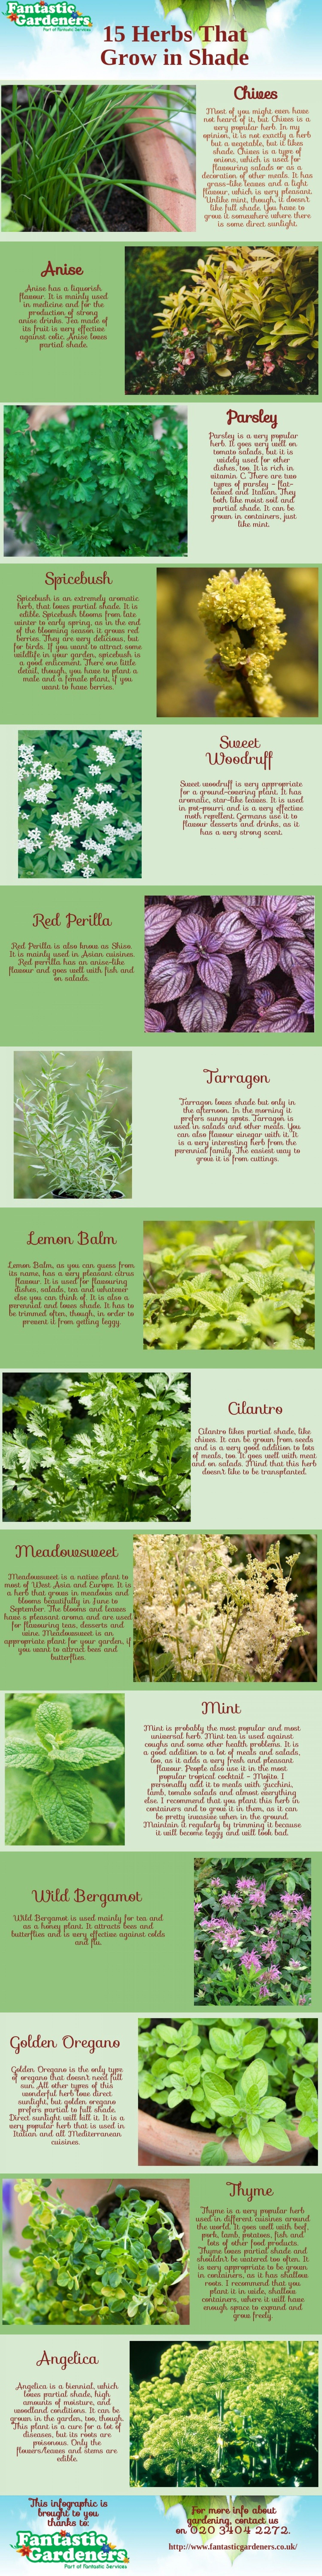 Everything Plants And Flowers 15 Herbs That Grow In Shade